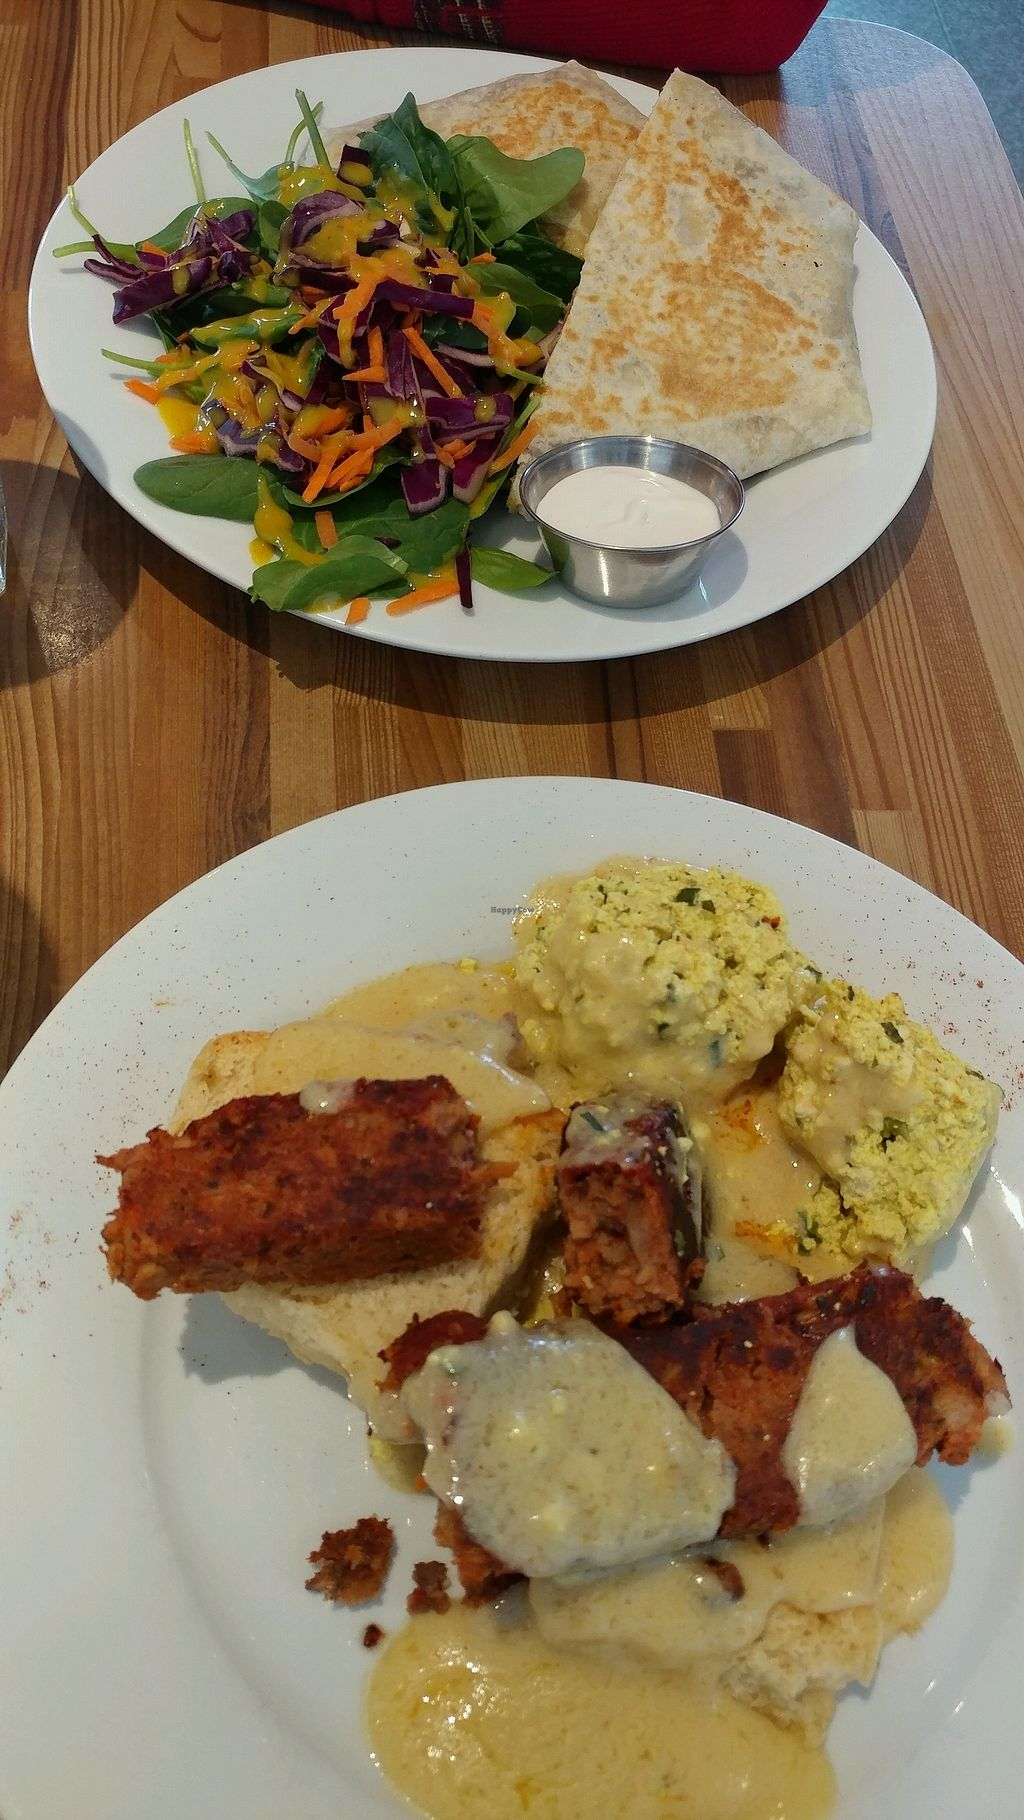 "Photo of Off The Griddle  by <a href=""/members/profile/Emi.S"">Emi.S</a> <br/>brunch wrap supreme w/ salad and meatloaf benedict <br/> December 24, 2017  - <a href='/contact/abuse/image/90999/338749'>Report</a>"